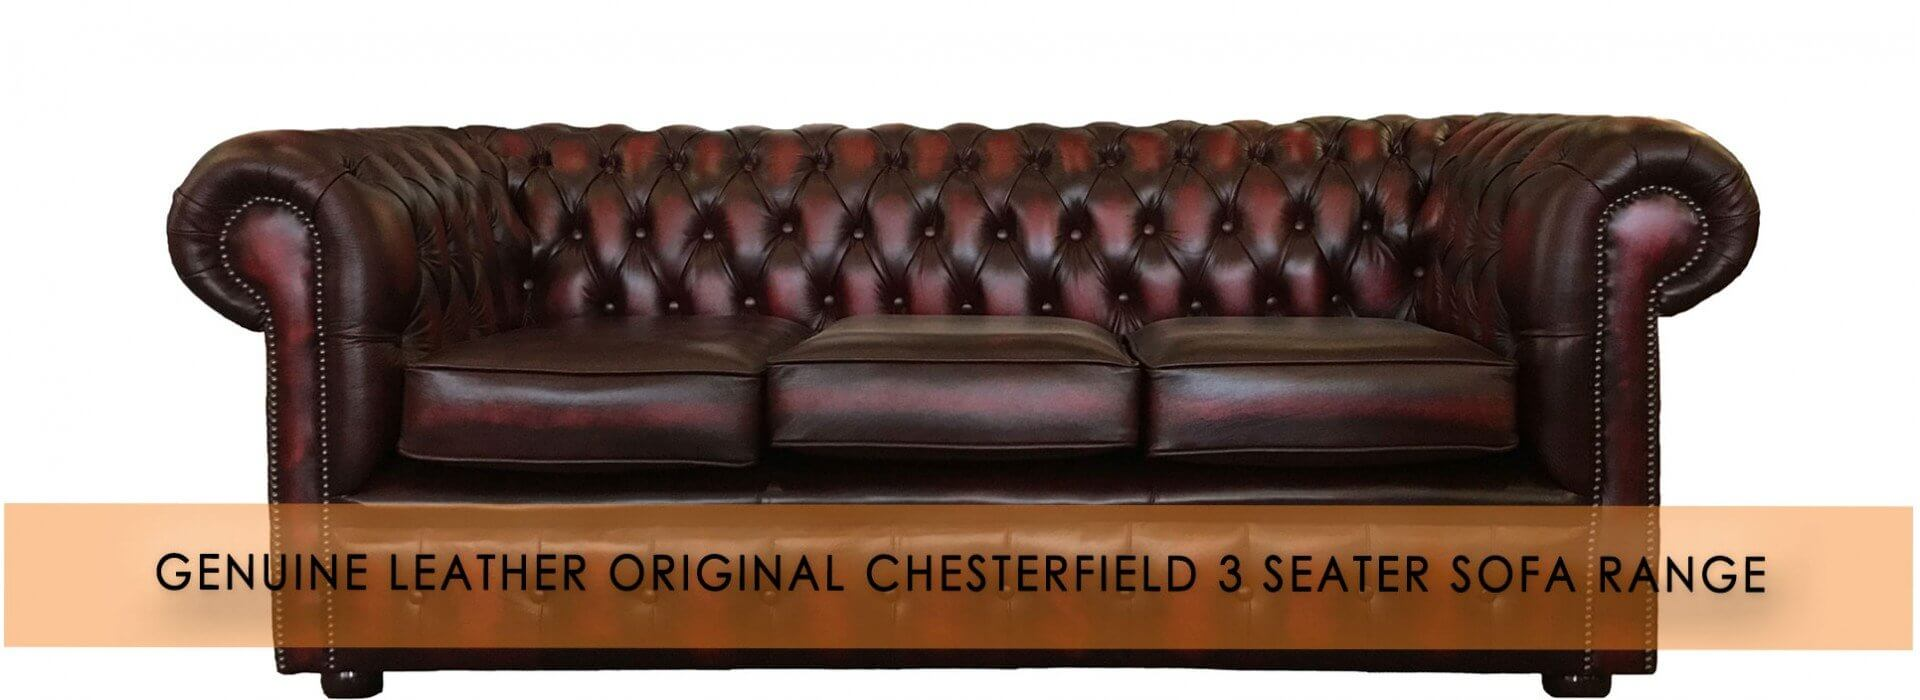 3 Seater Sofa Range